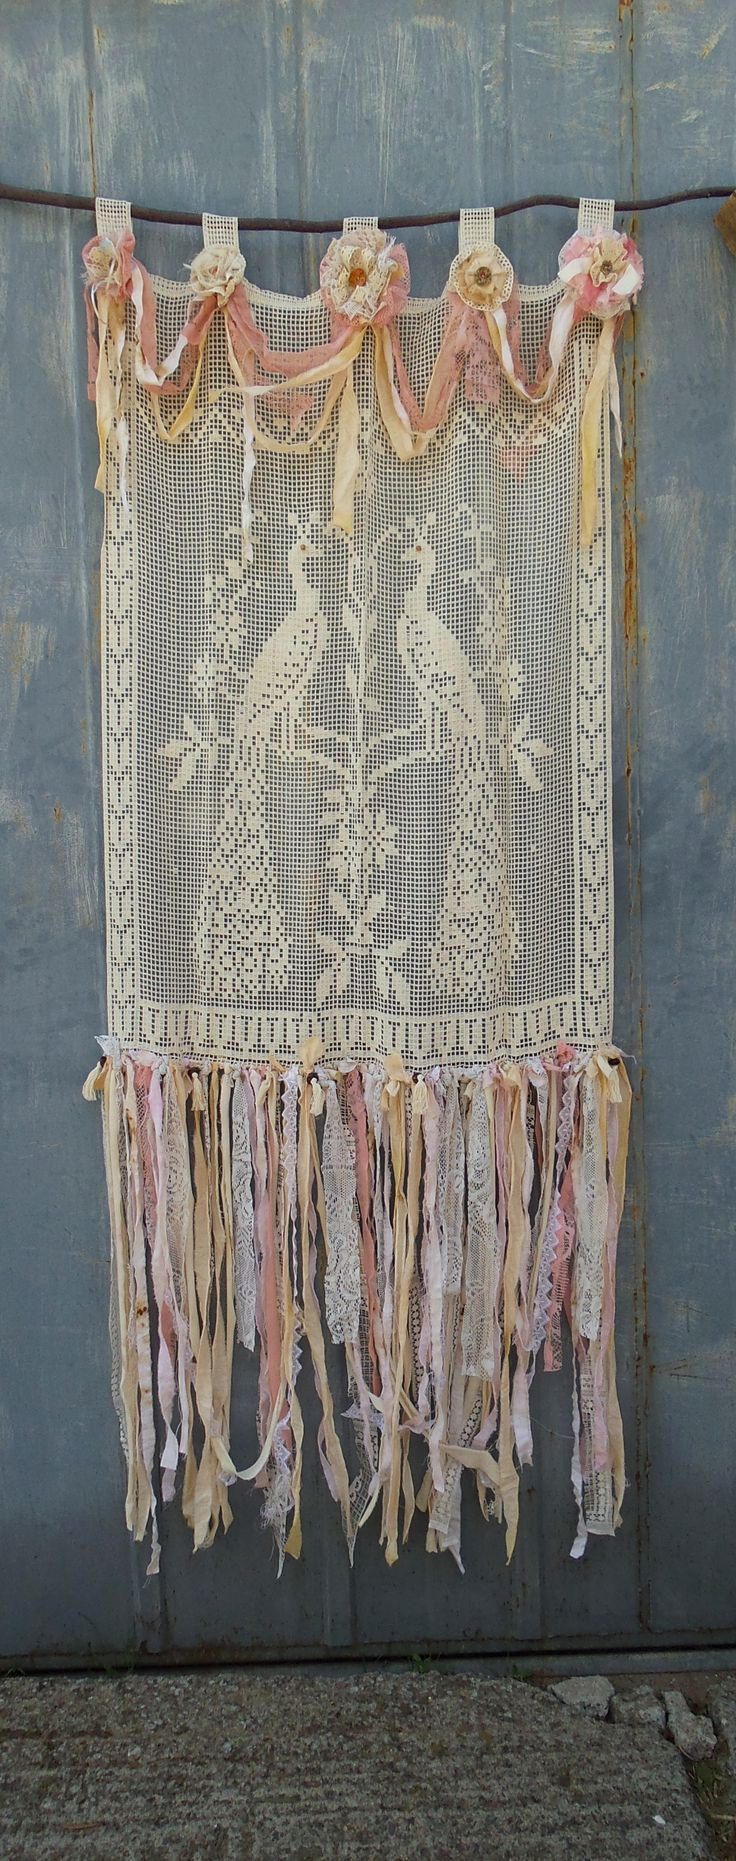 Gypsy shabby chic curtains - Shabby Chic Curtain Panels Ready To Ship French Cottage Chic Rod Pocket Curtain Wedding Backdrop Room